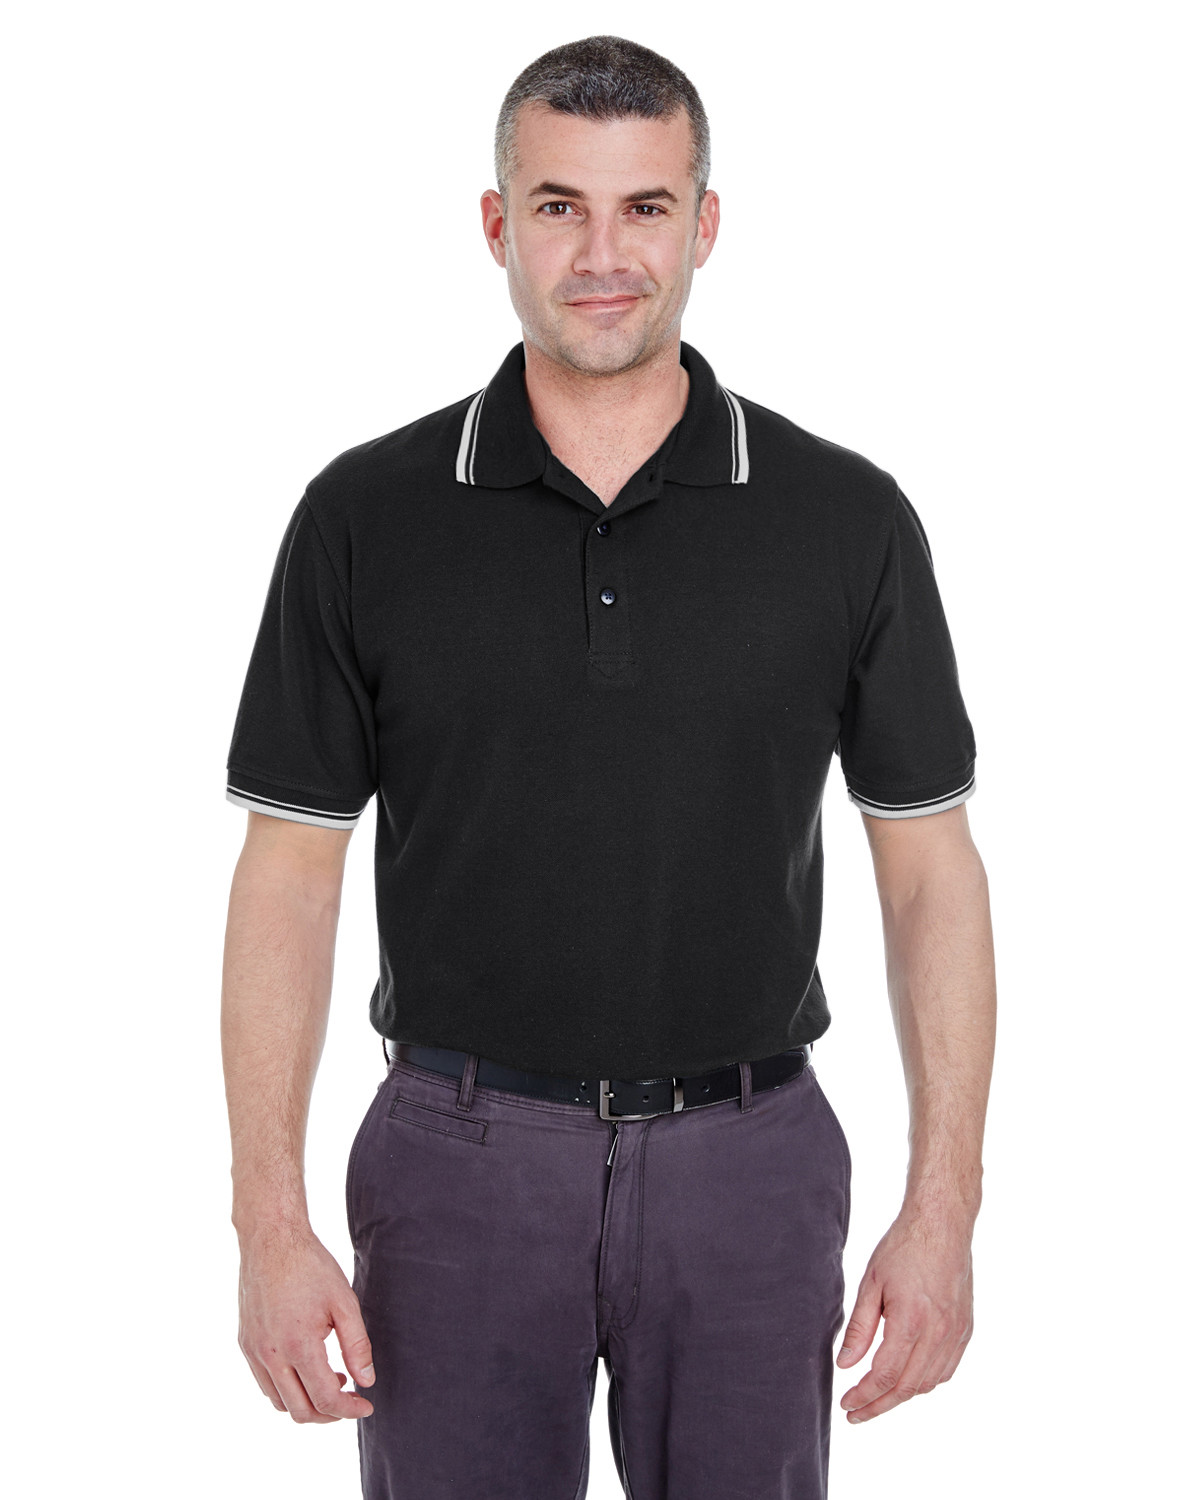 Men's Short-Sleeve Whisper Piqué Polo with Tipped Collar and Cuffs